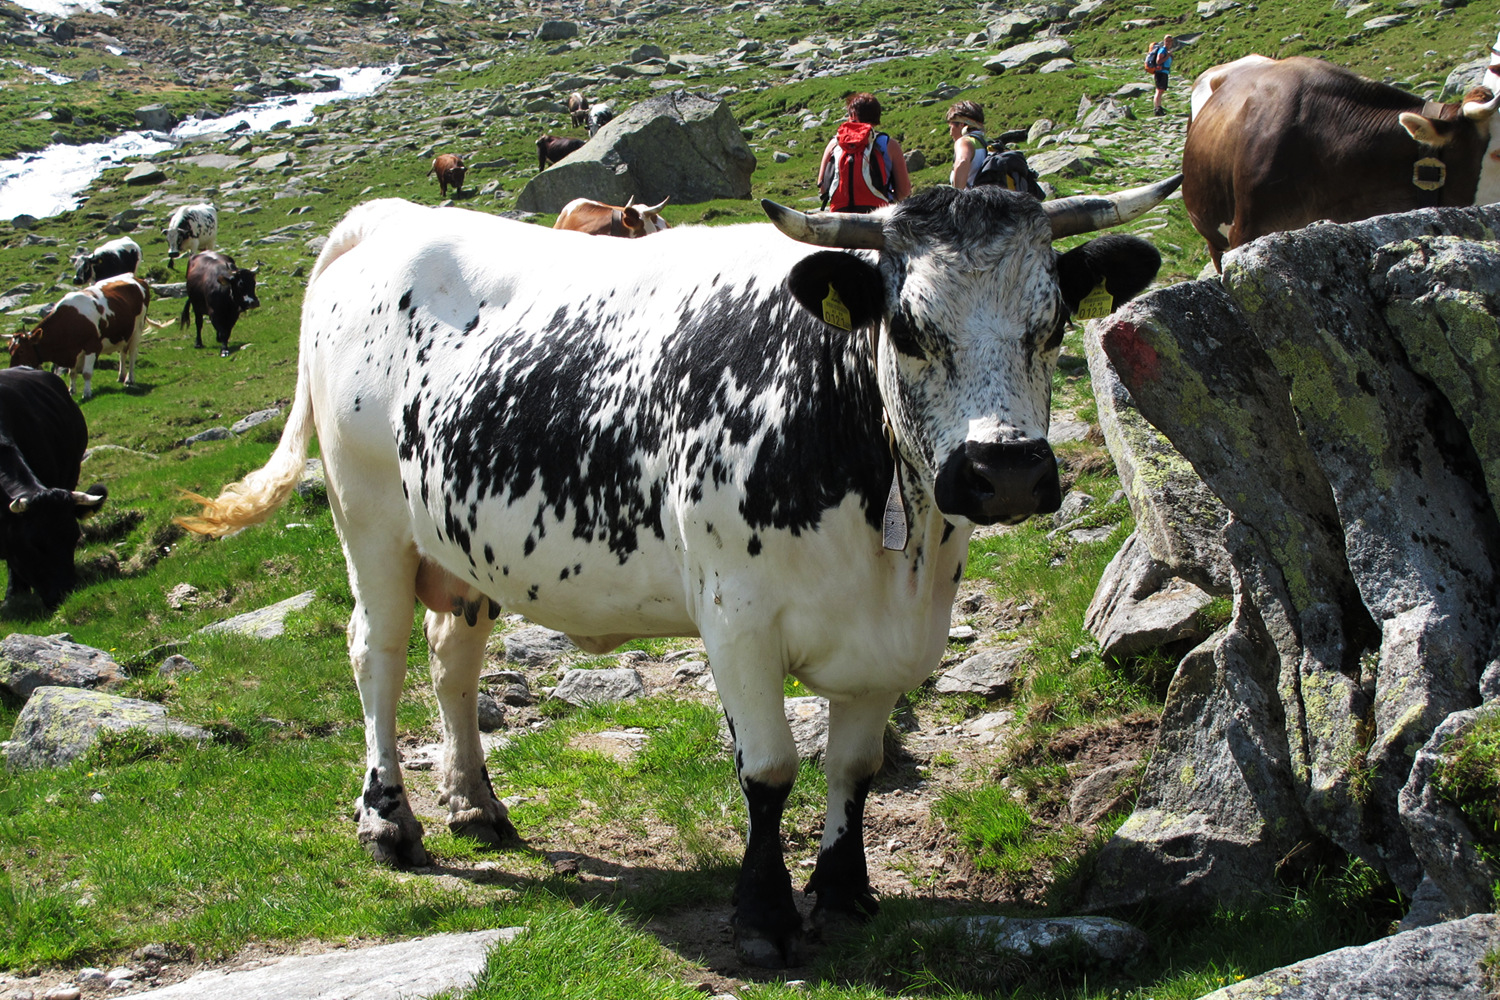 A black and white cow in the high Alps, Austria.